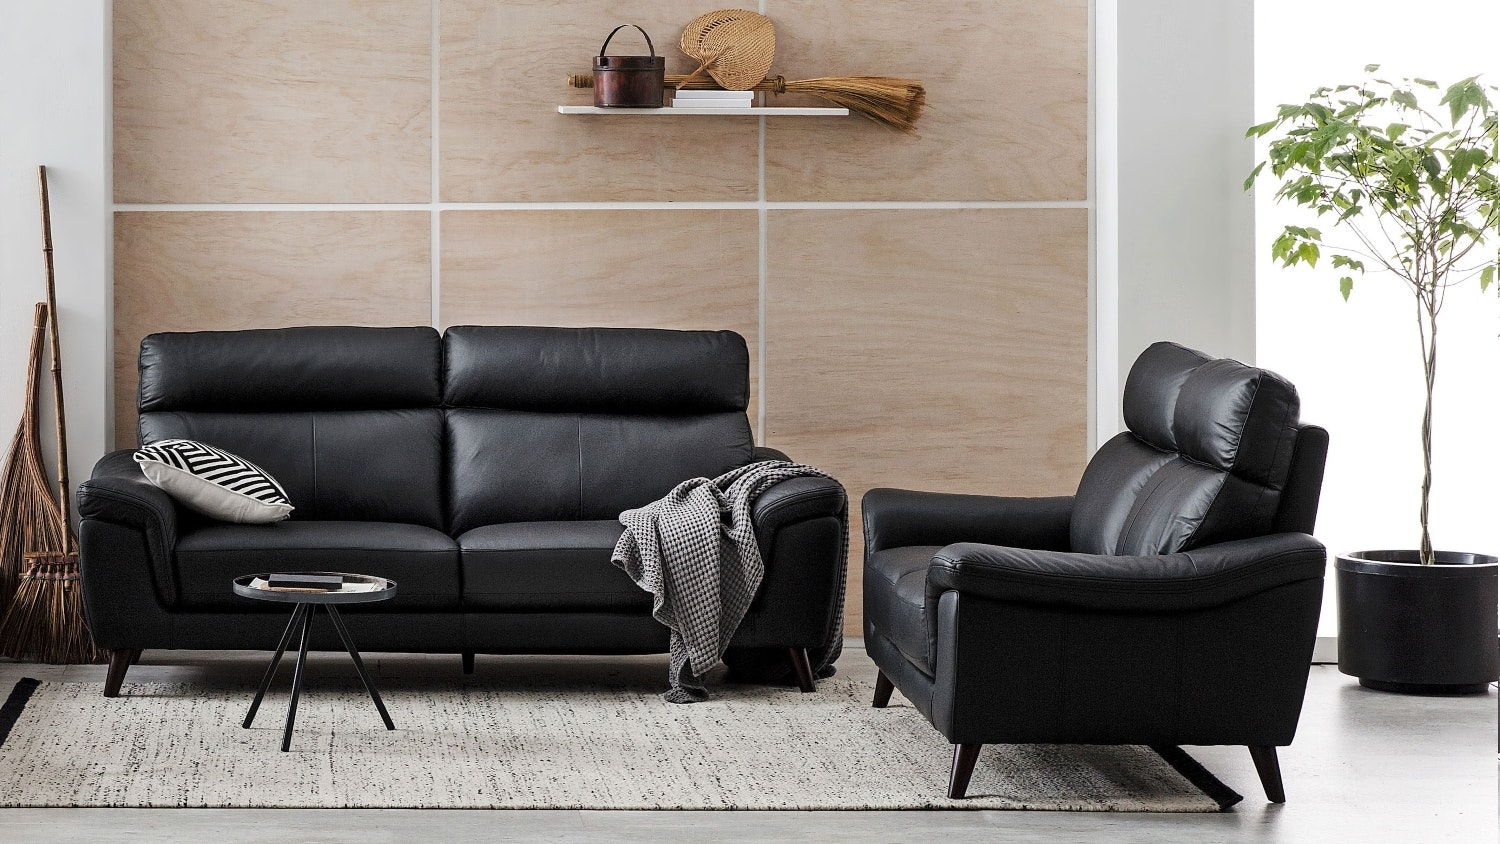 Roma Leather Sofa